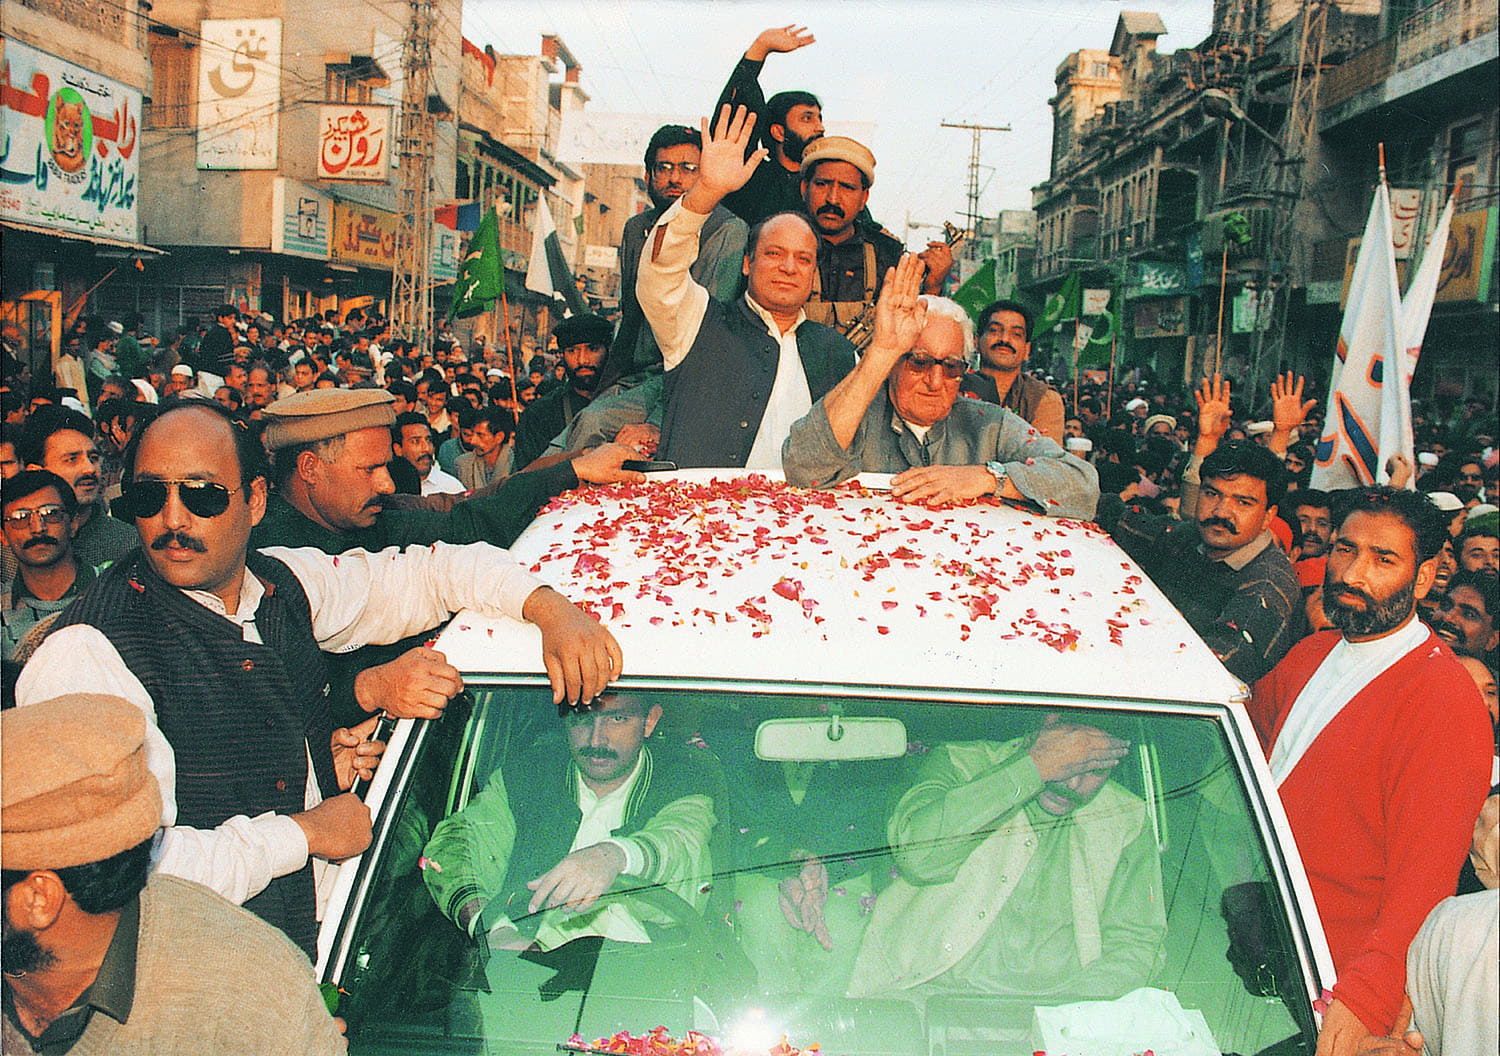 Between his first and second tenures at the helm during the politically troubled 1990s, Nawaz Sharif kept himself busy with public appearances across the land. He is seen here alongside Khan Abdul Wali Khan of the Awami National Party at a Rawalpindi rally in December 1994.